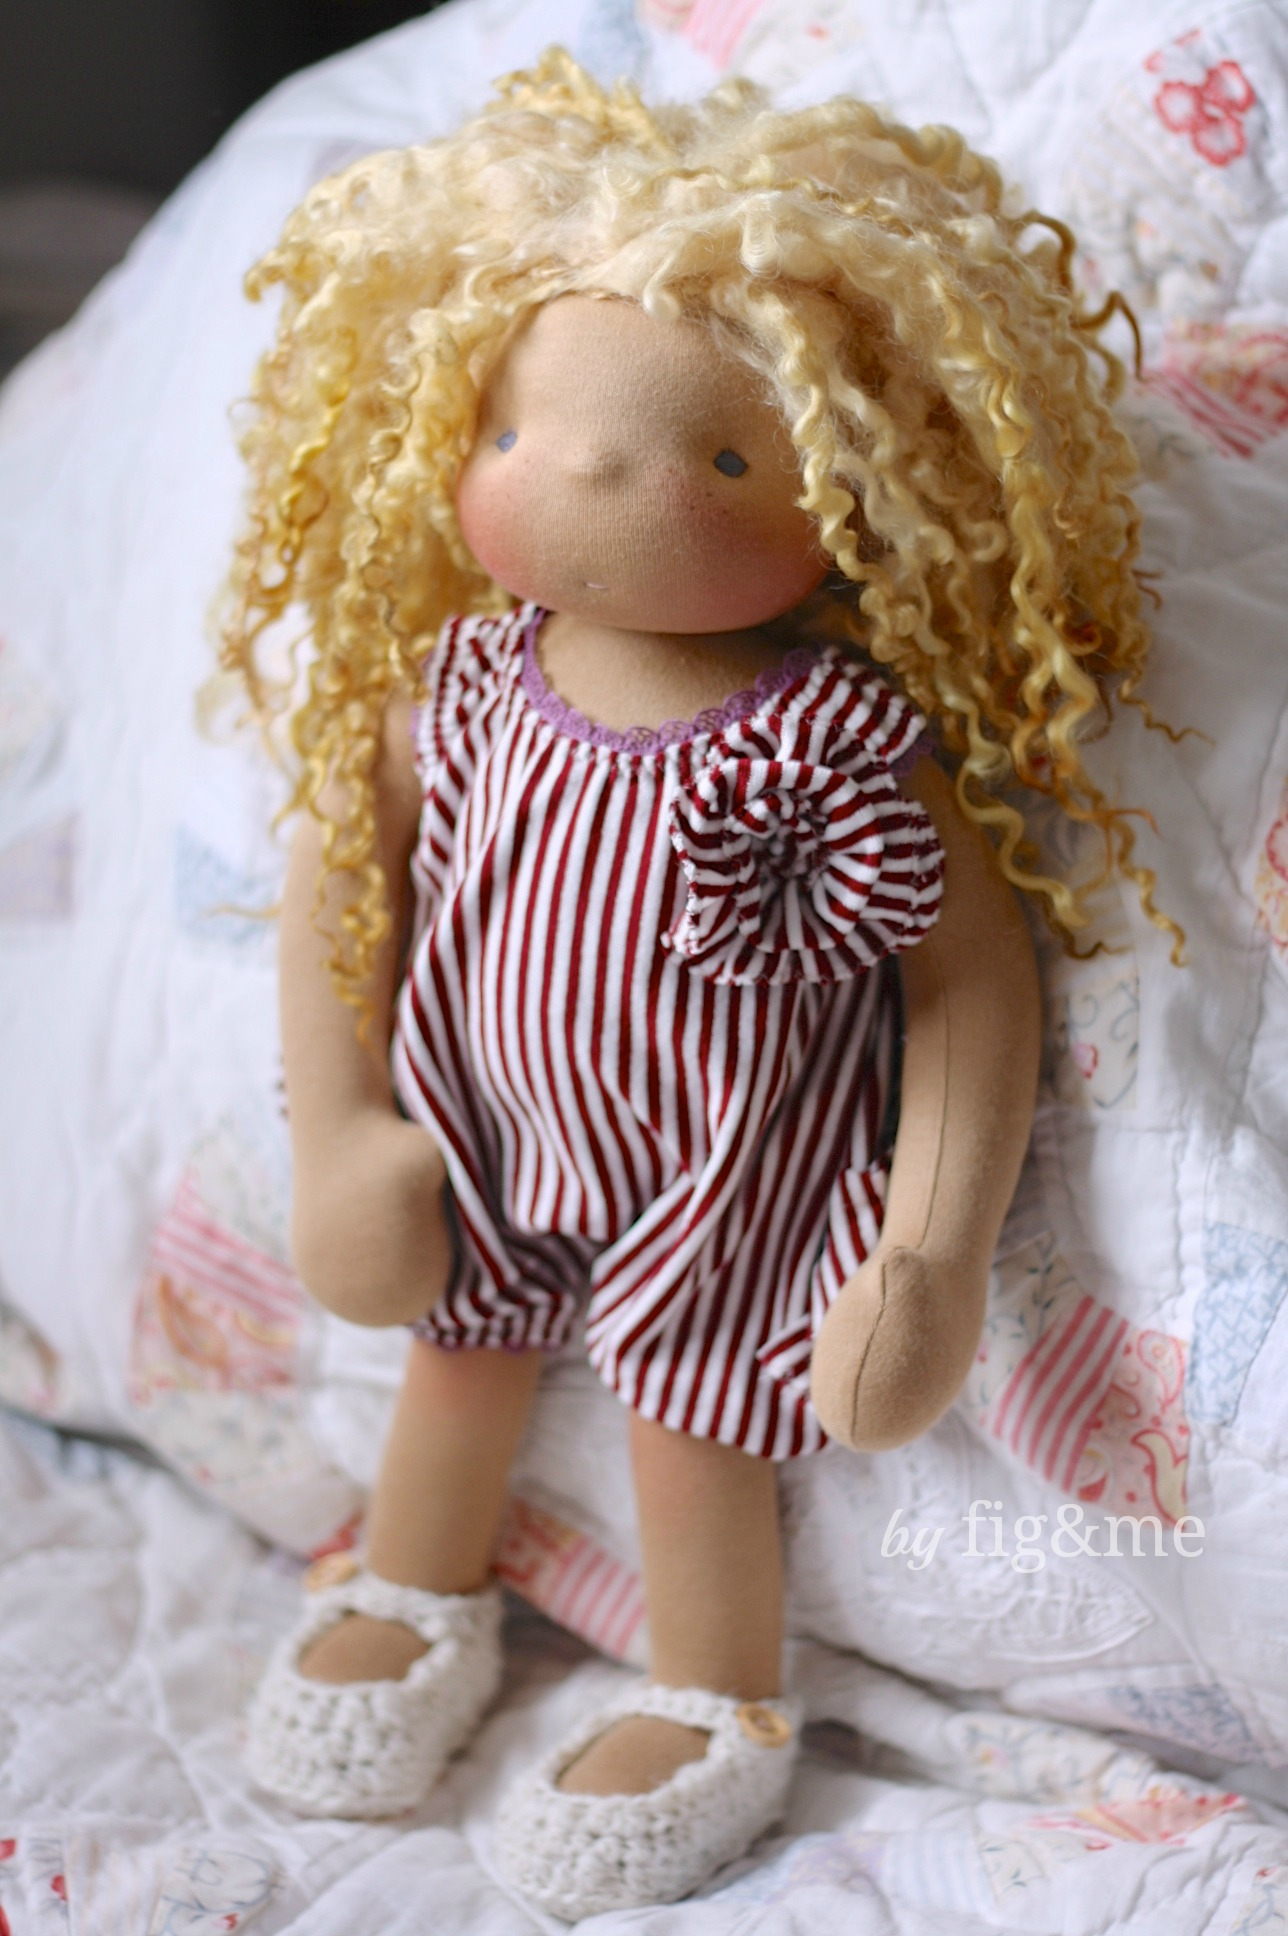 Handmade doll in her bathing suit, by Fig and me.